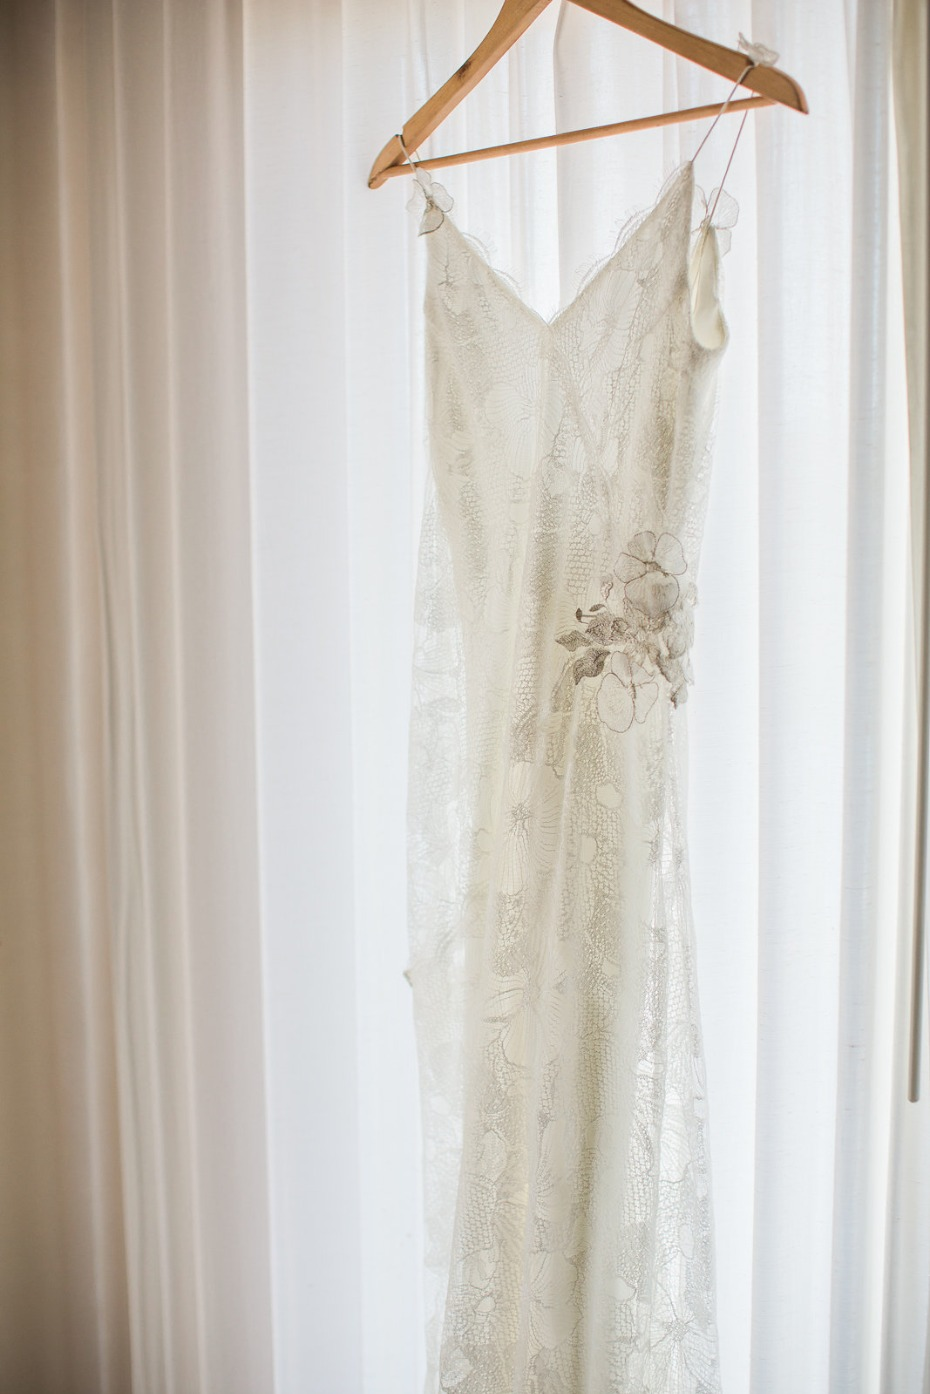 Elegant wedding dress for the beach